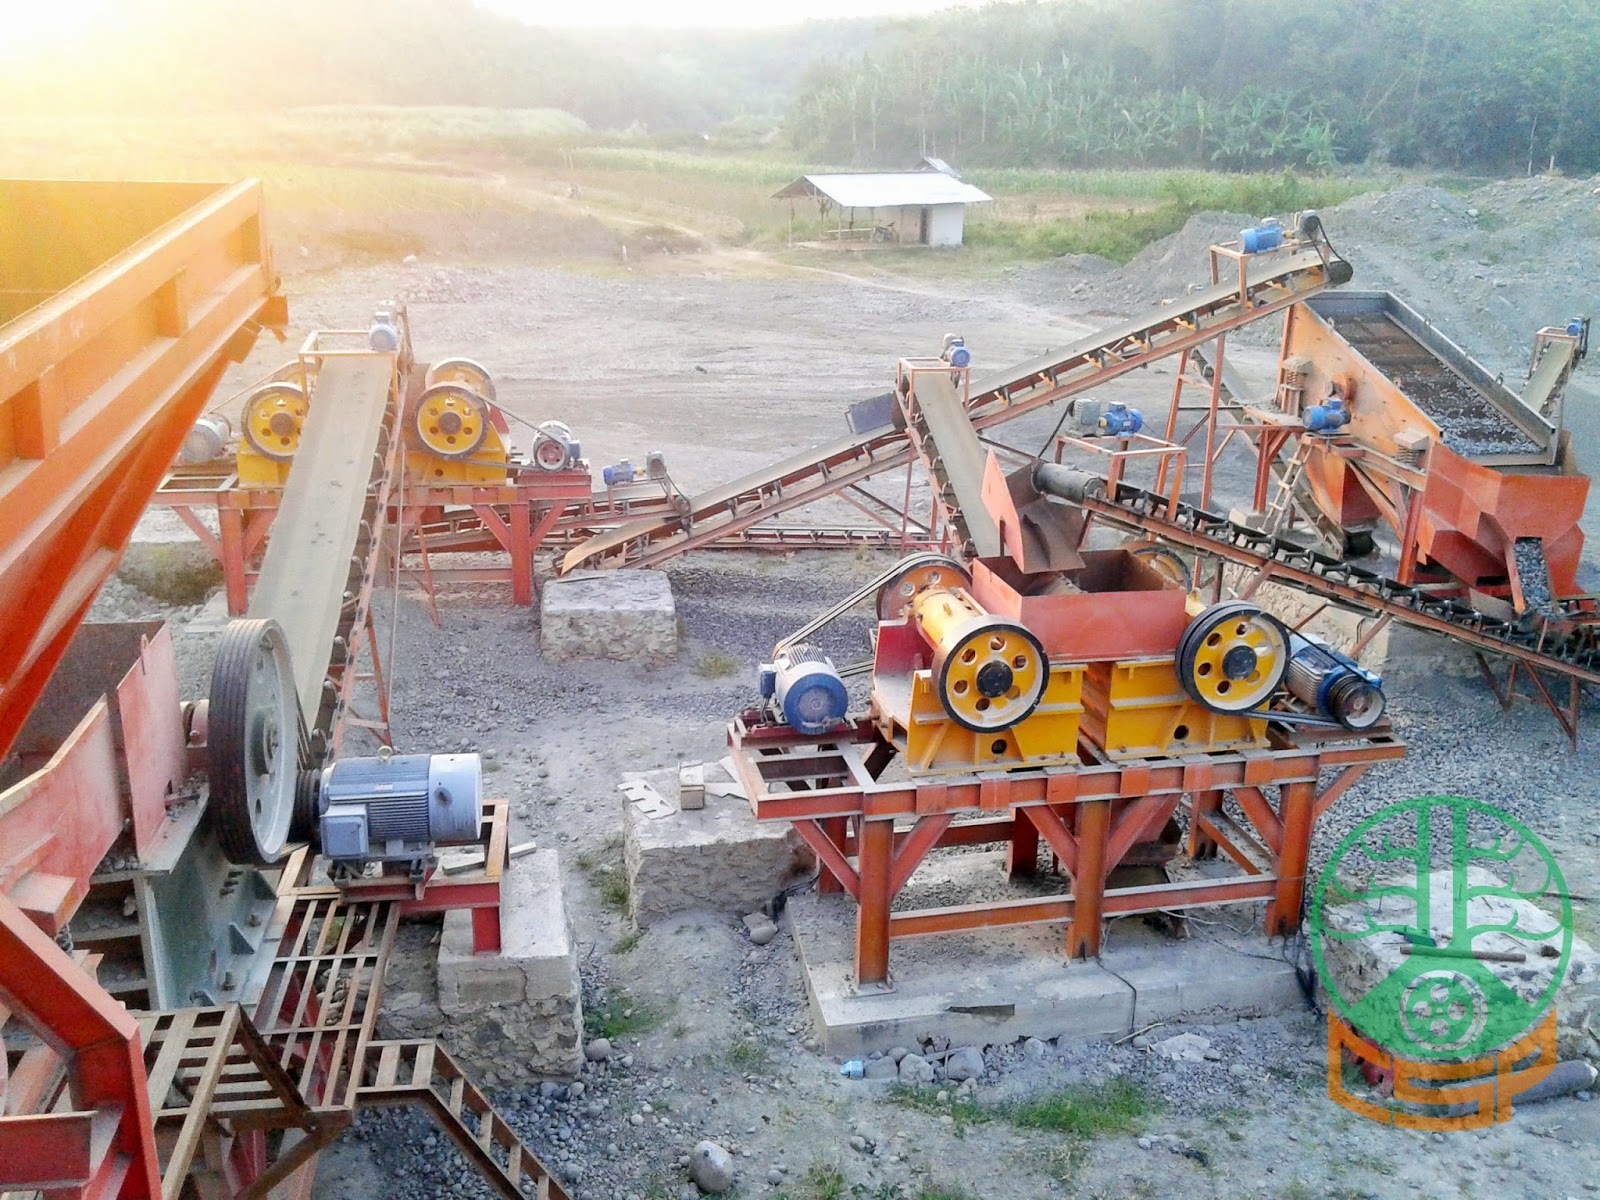 stone crushing plant project report M/s natthulal bhagwandas agrawal prop : smt project report on stone crusher for m/s natthulal bhagwandas agrawal entrance of the crushing plant up to unloading and loading location shall be p.